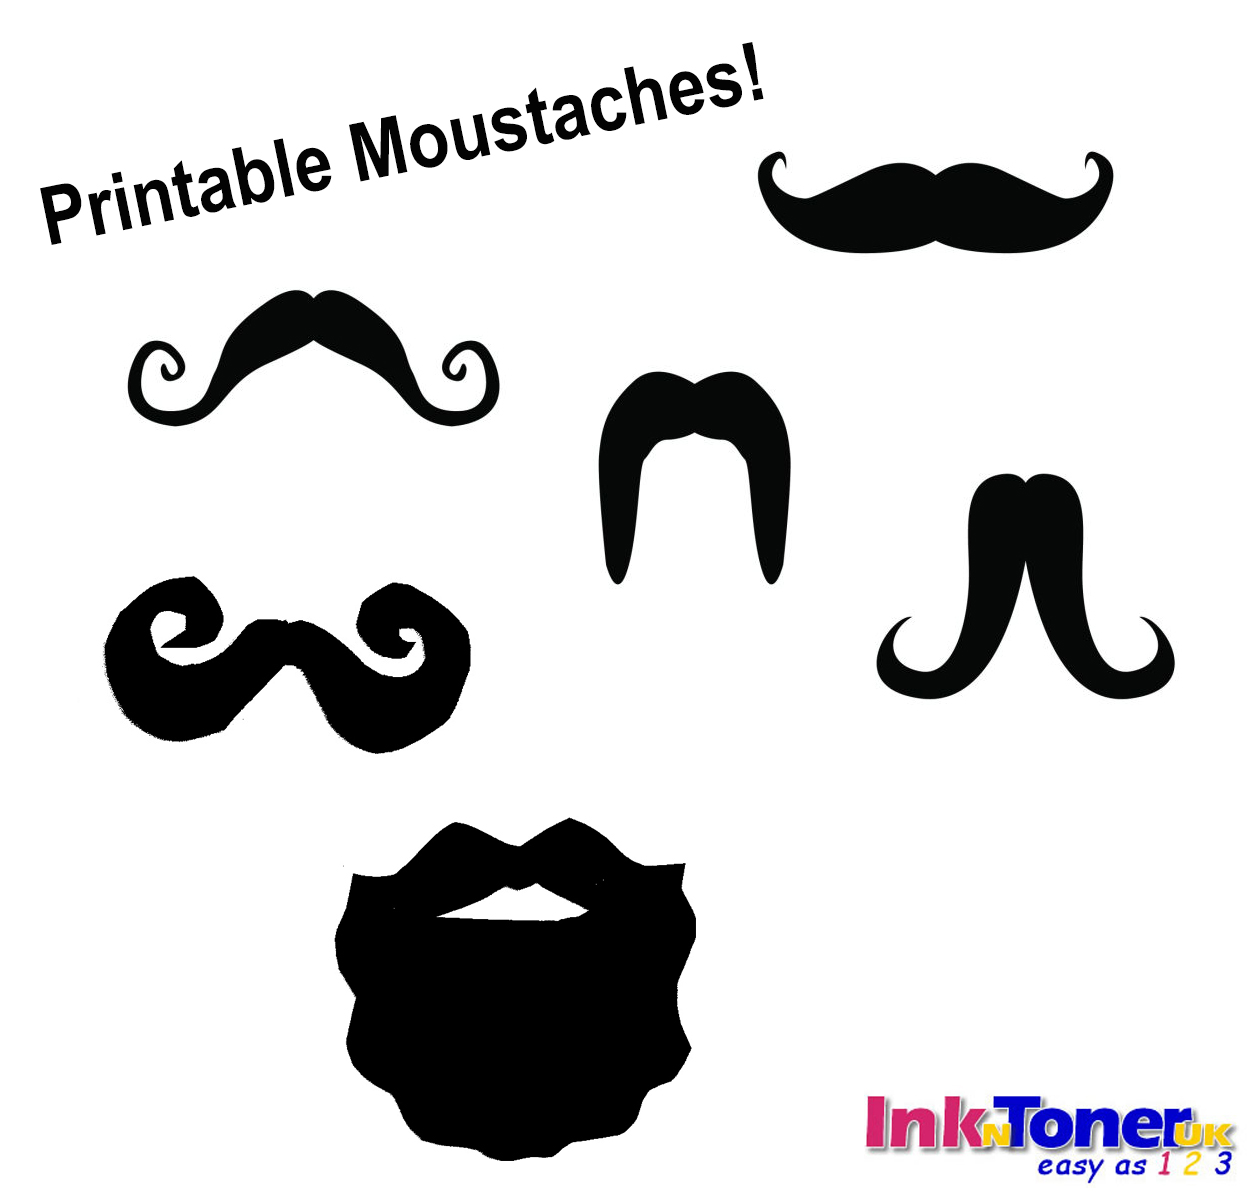 picture relating to Printable Moustaches named Movember Moustaches Print your personal Moustache